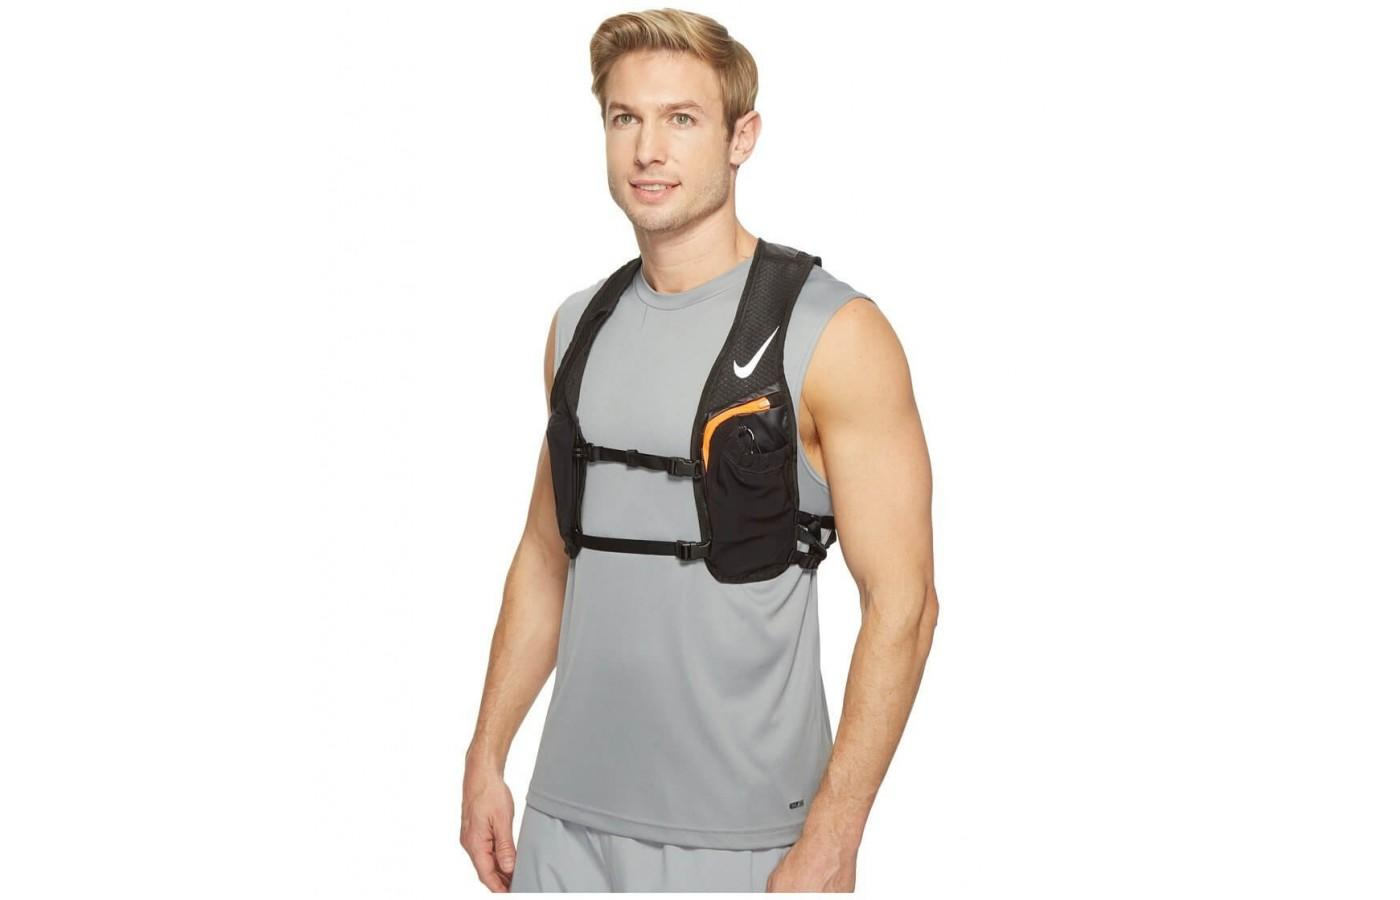 The Nike Hydration Race Vest features two easy to reach front-facing pockets